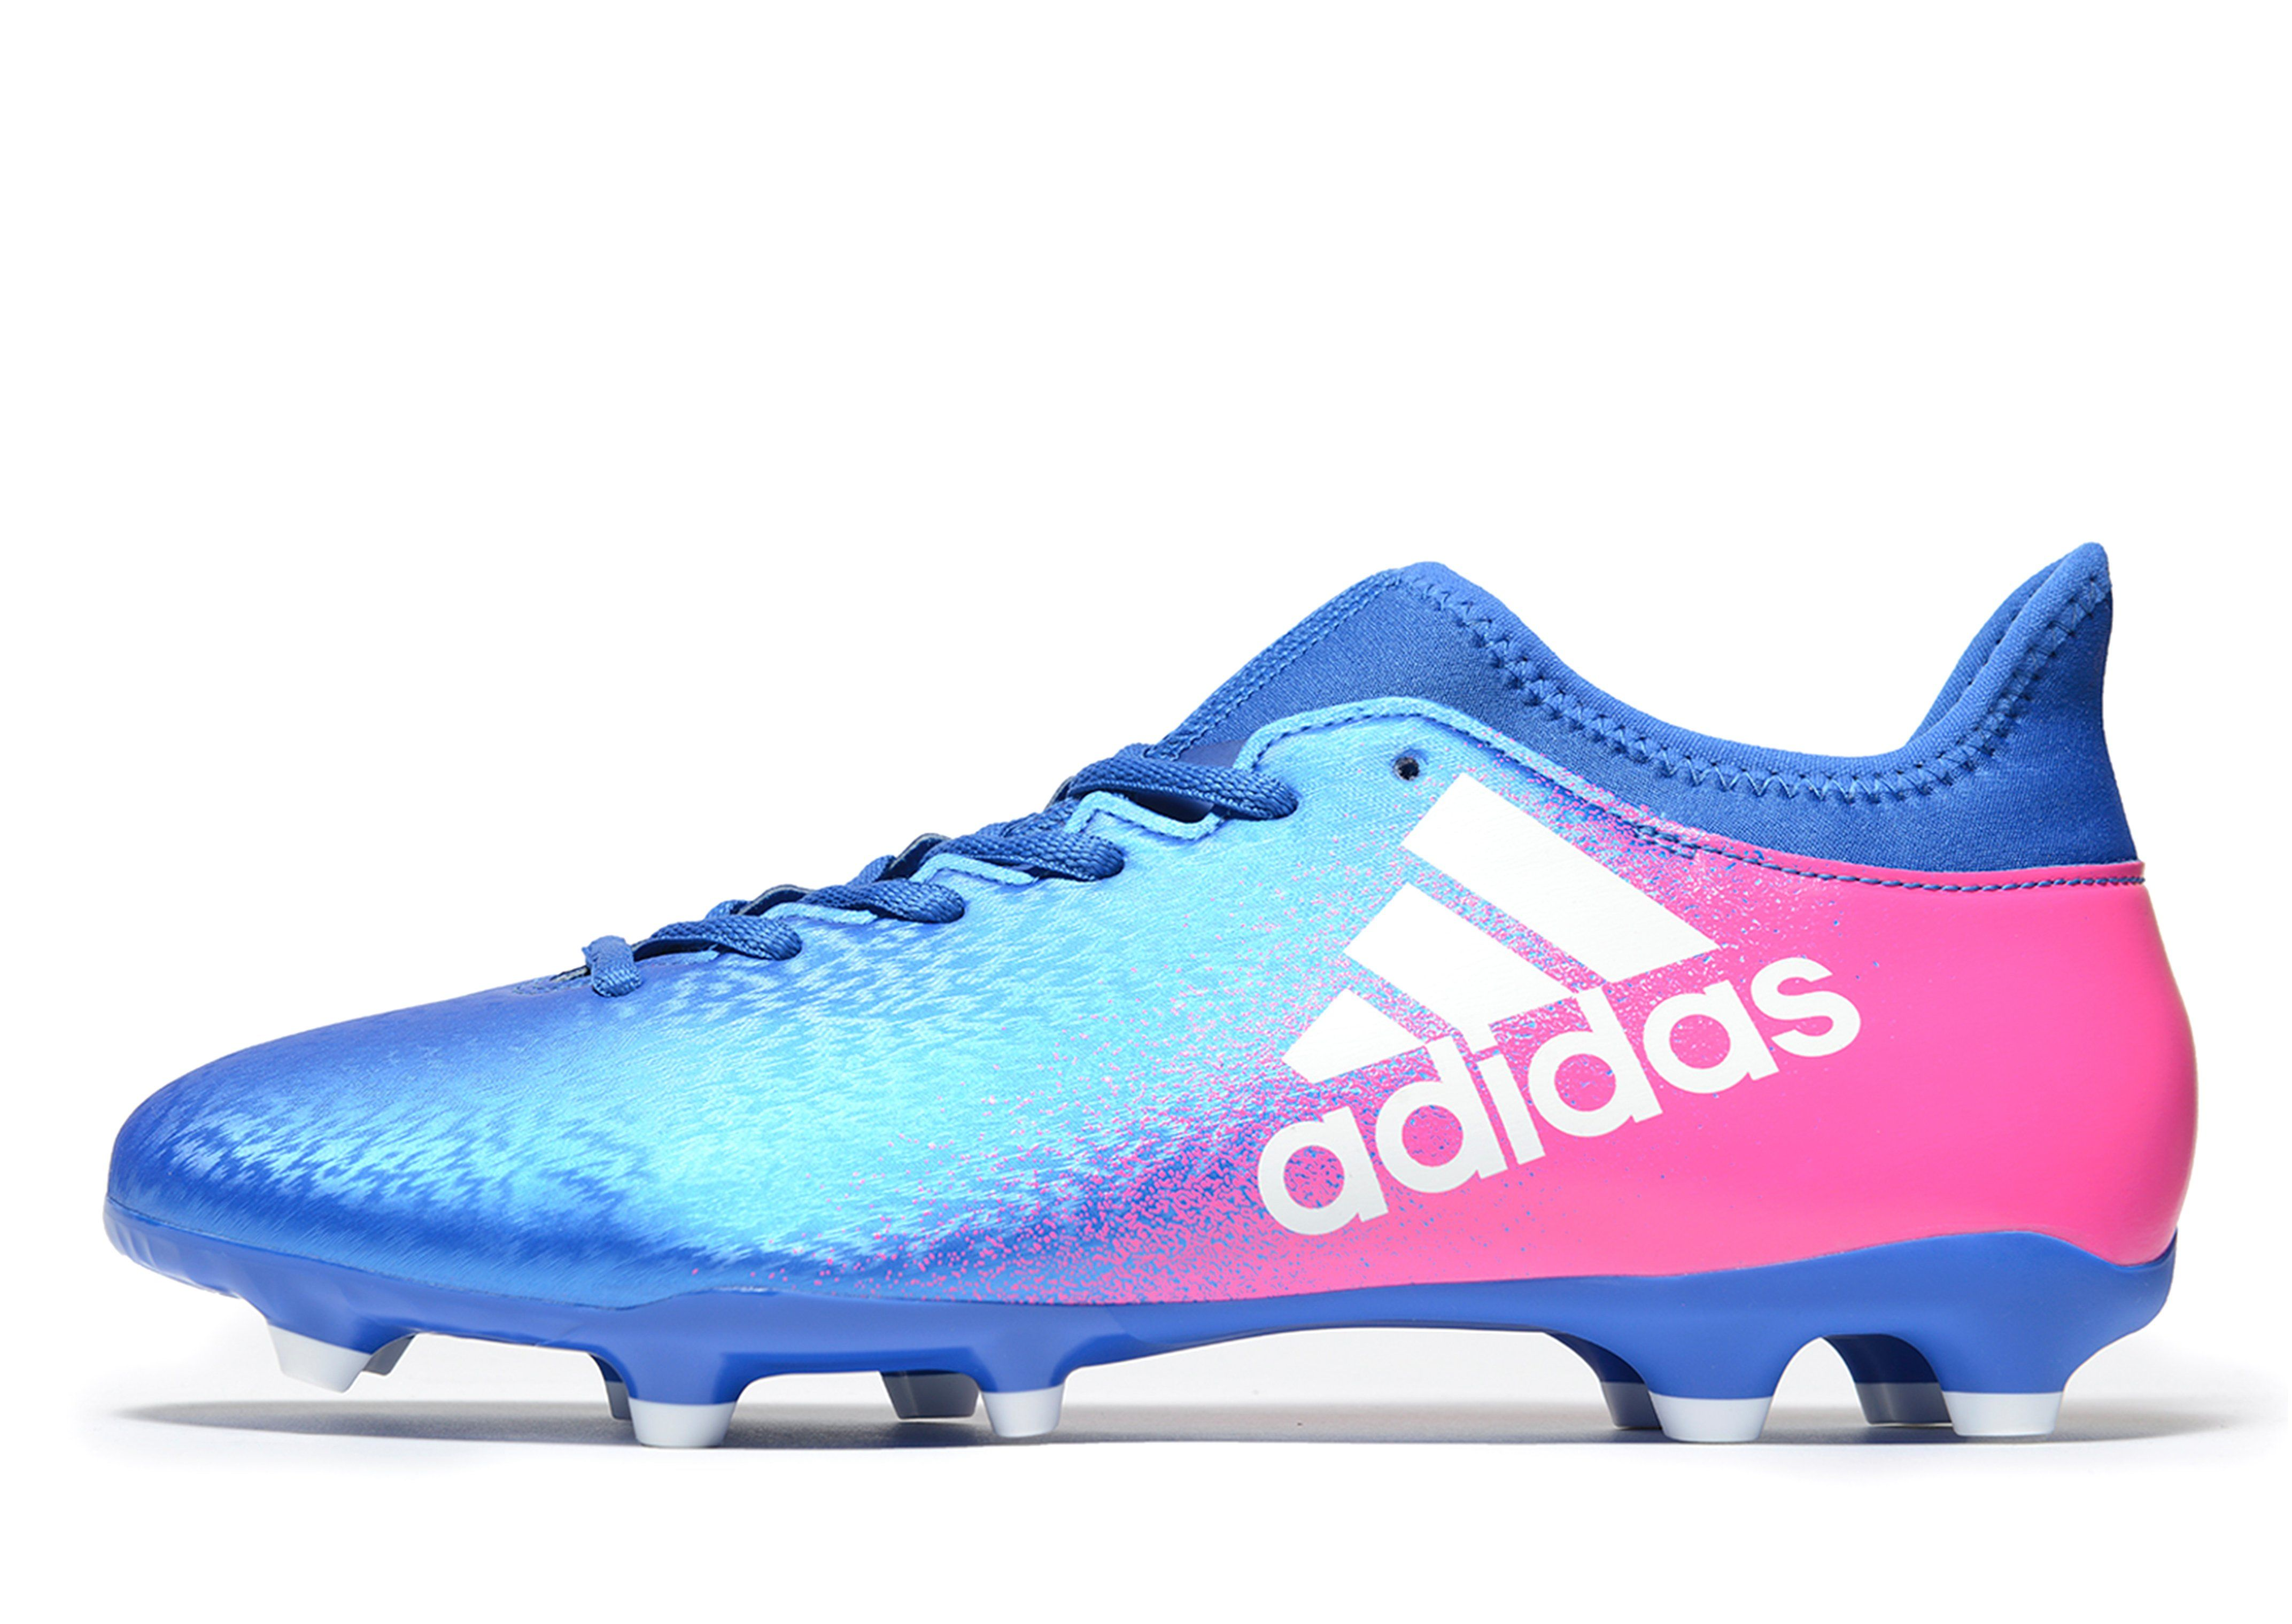 Adidas New Shoes  Football